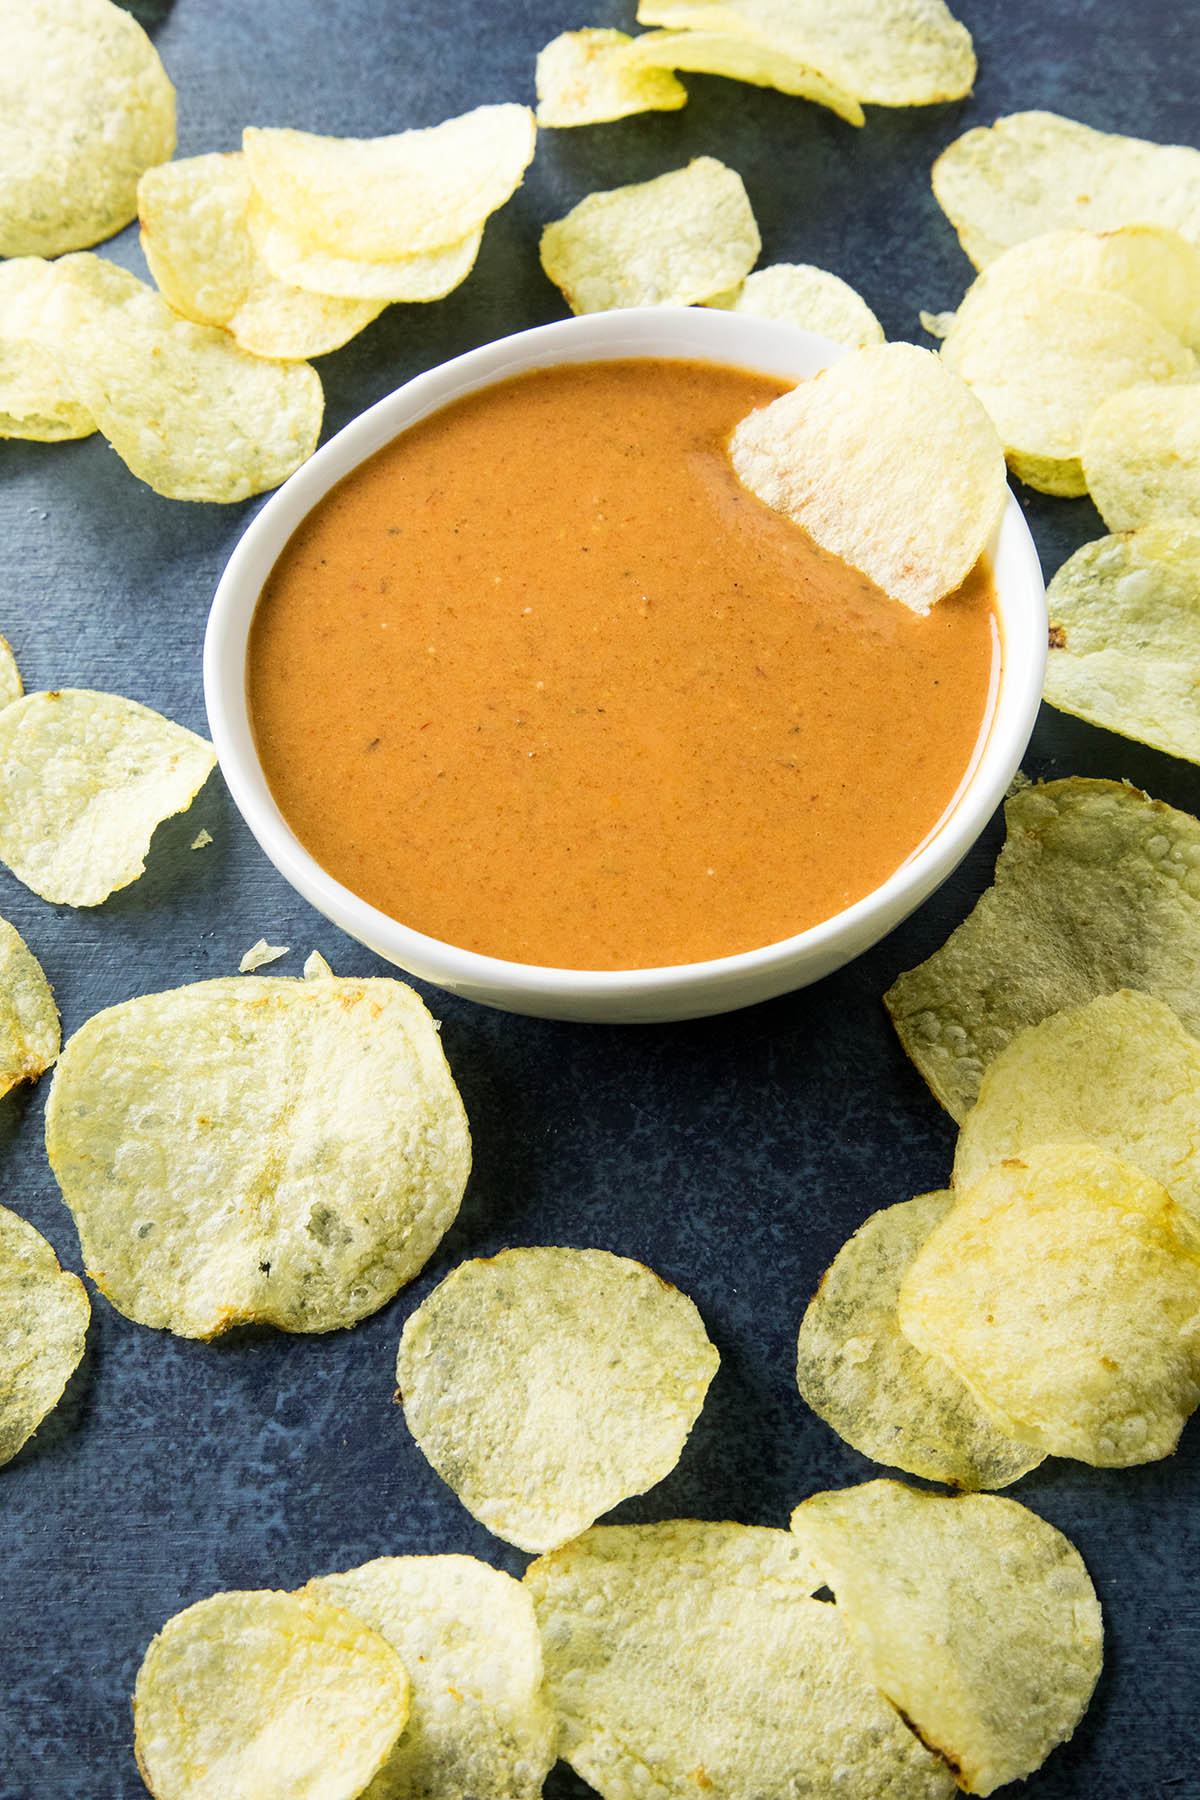 Chipotle Honey Mustard Dip2